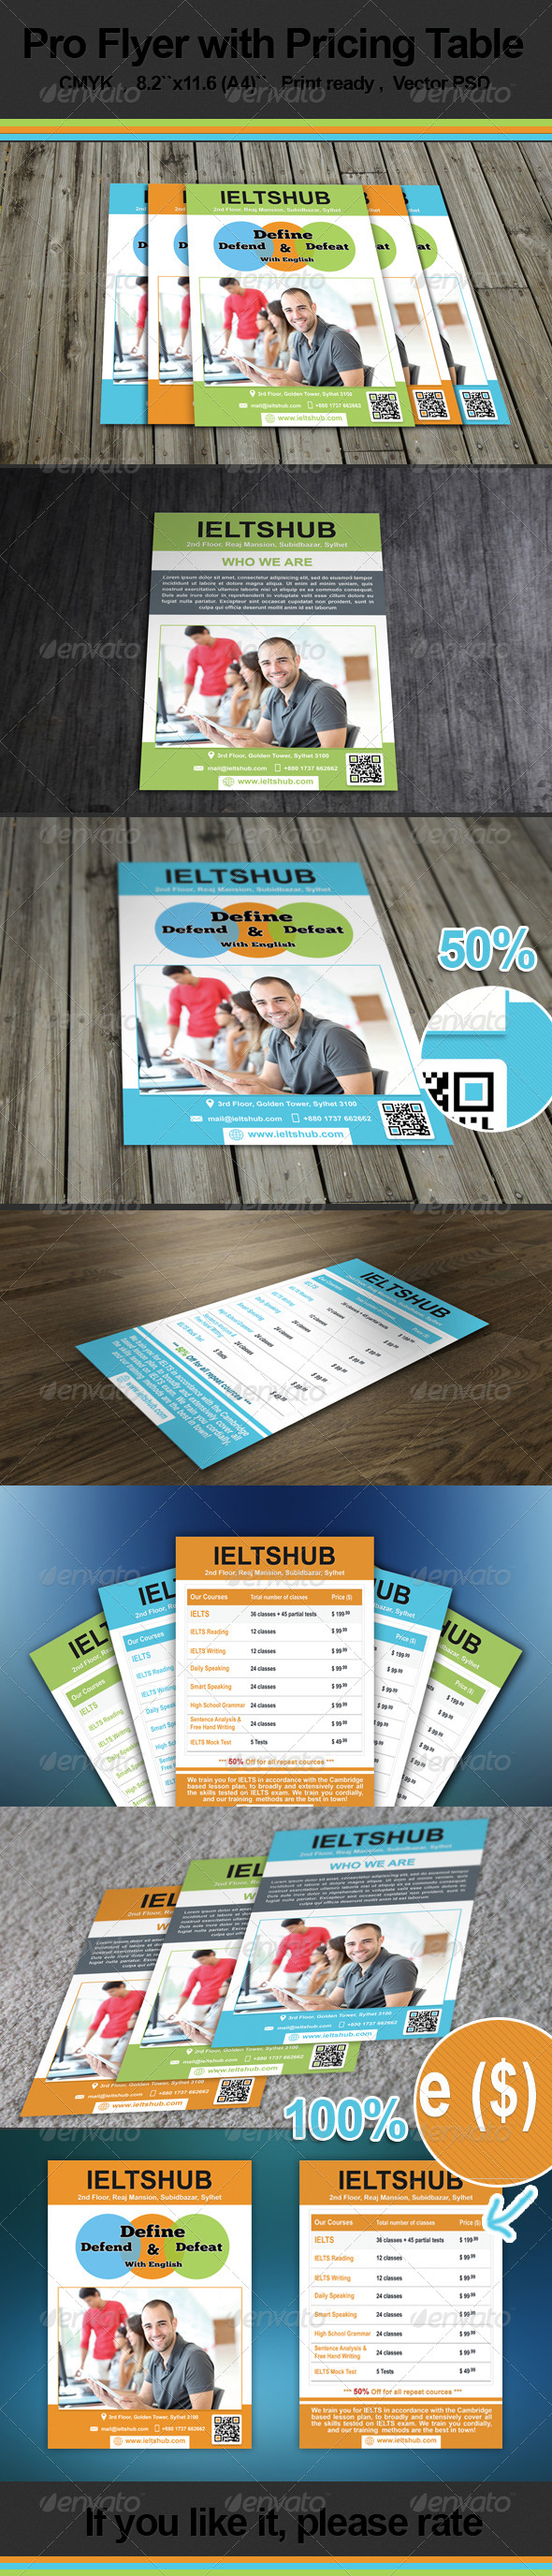 Pro Flyer with Pricing table - Corporate Flyers